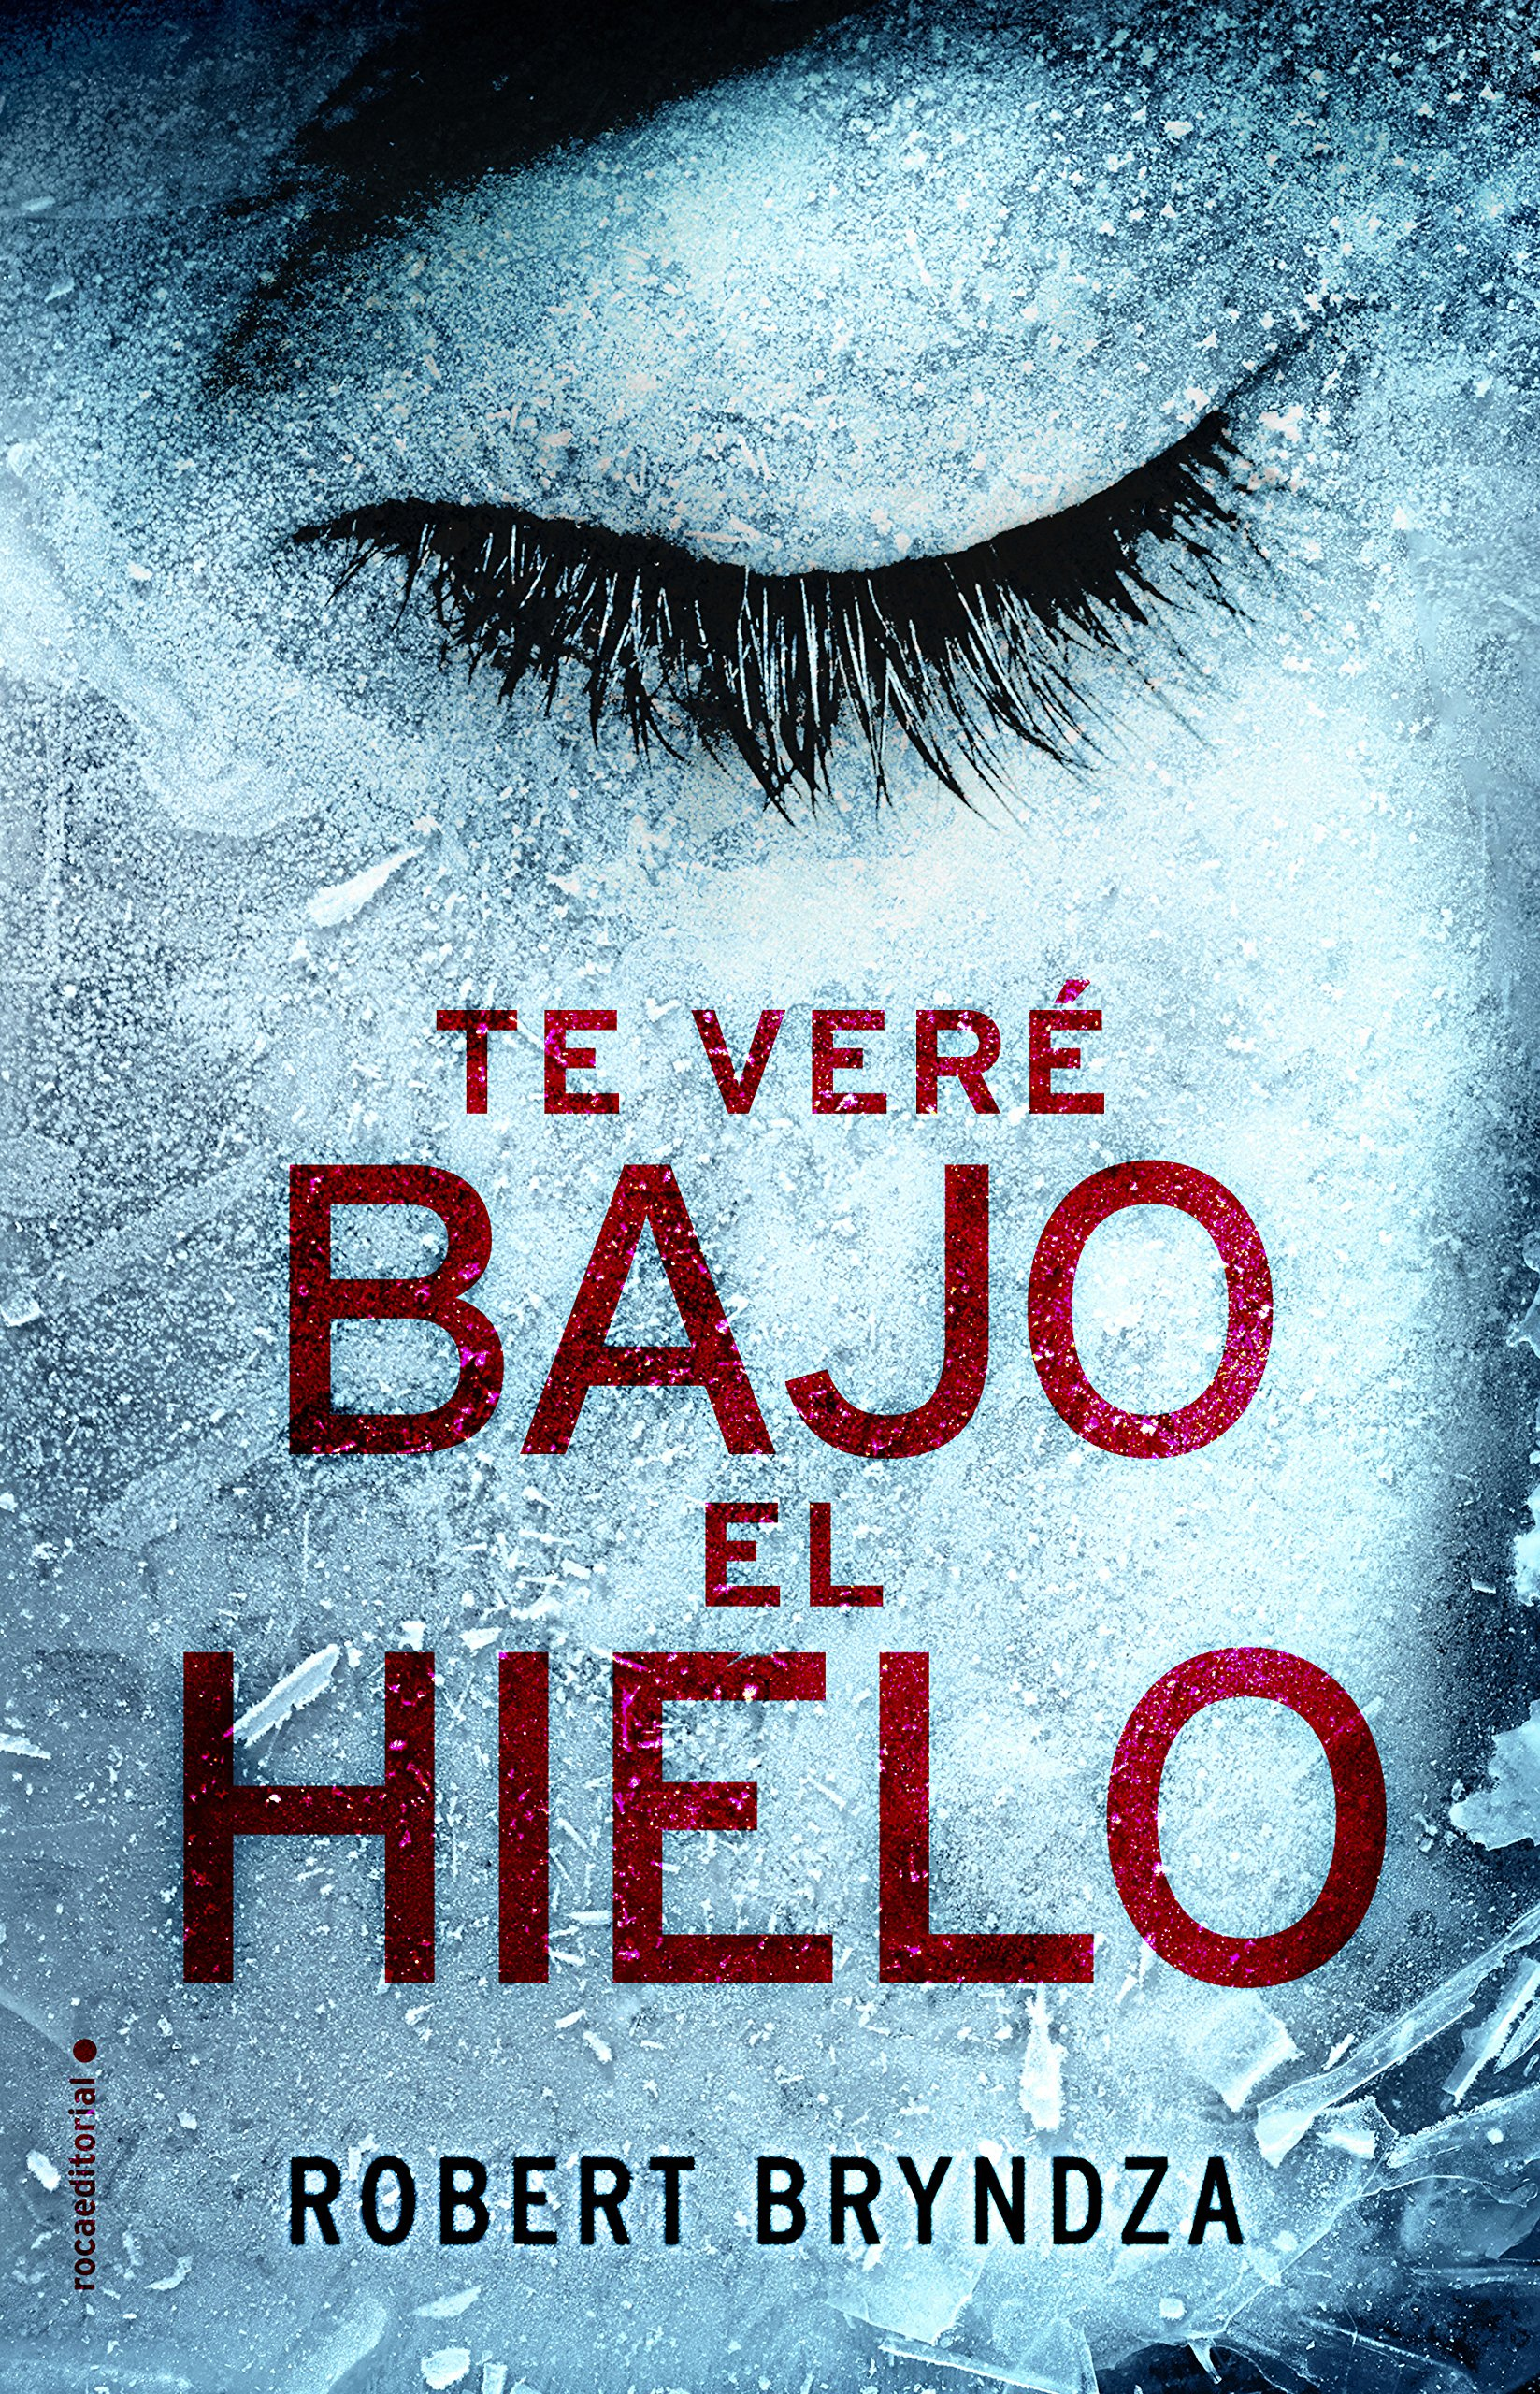 Amazon.com: Te vere bajo el hielo (Spanish Edition) (9788416700530): Robert Bryndza: Books